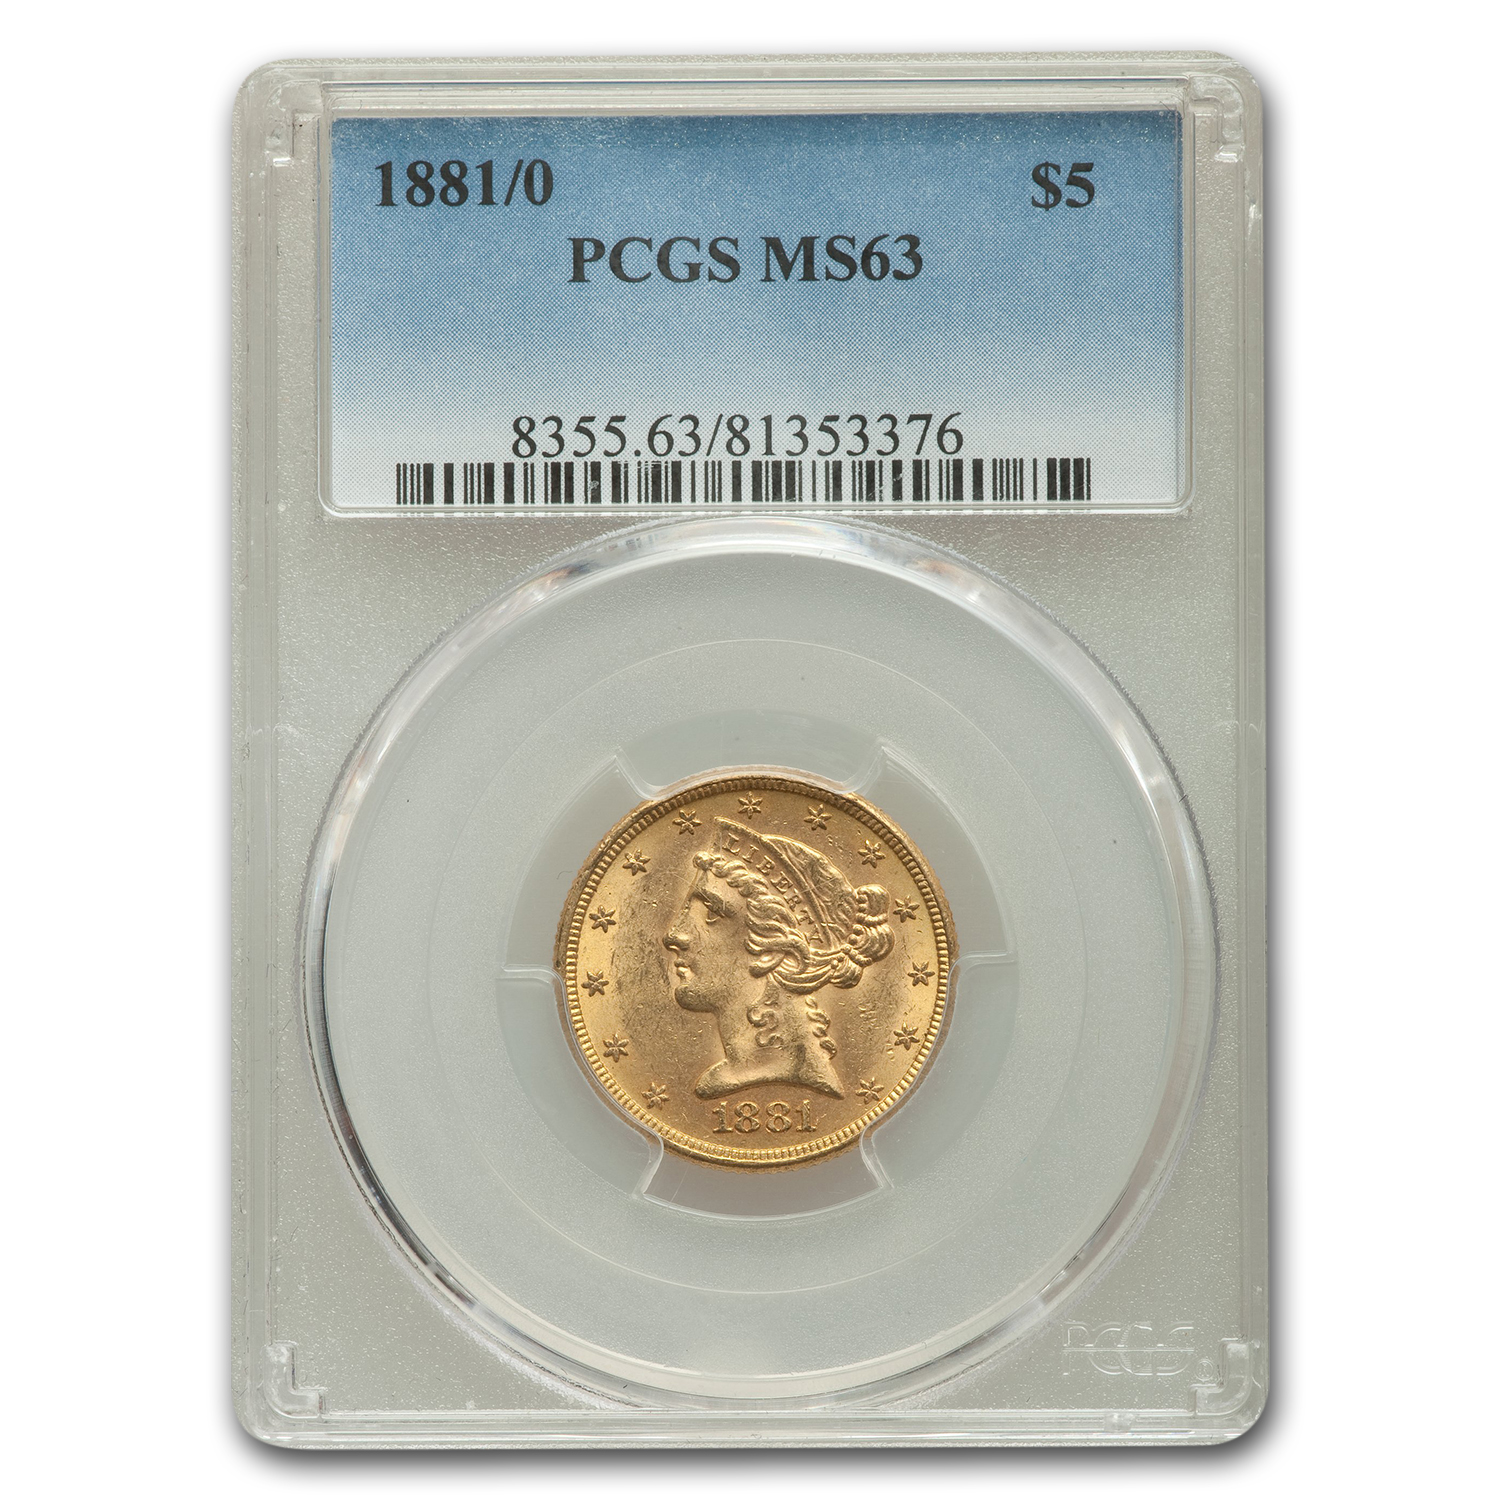 1881/0 $5 Liberty Gold Half Eagle MS-63 PCGS